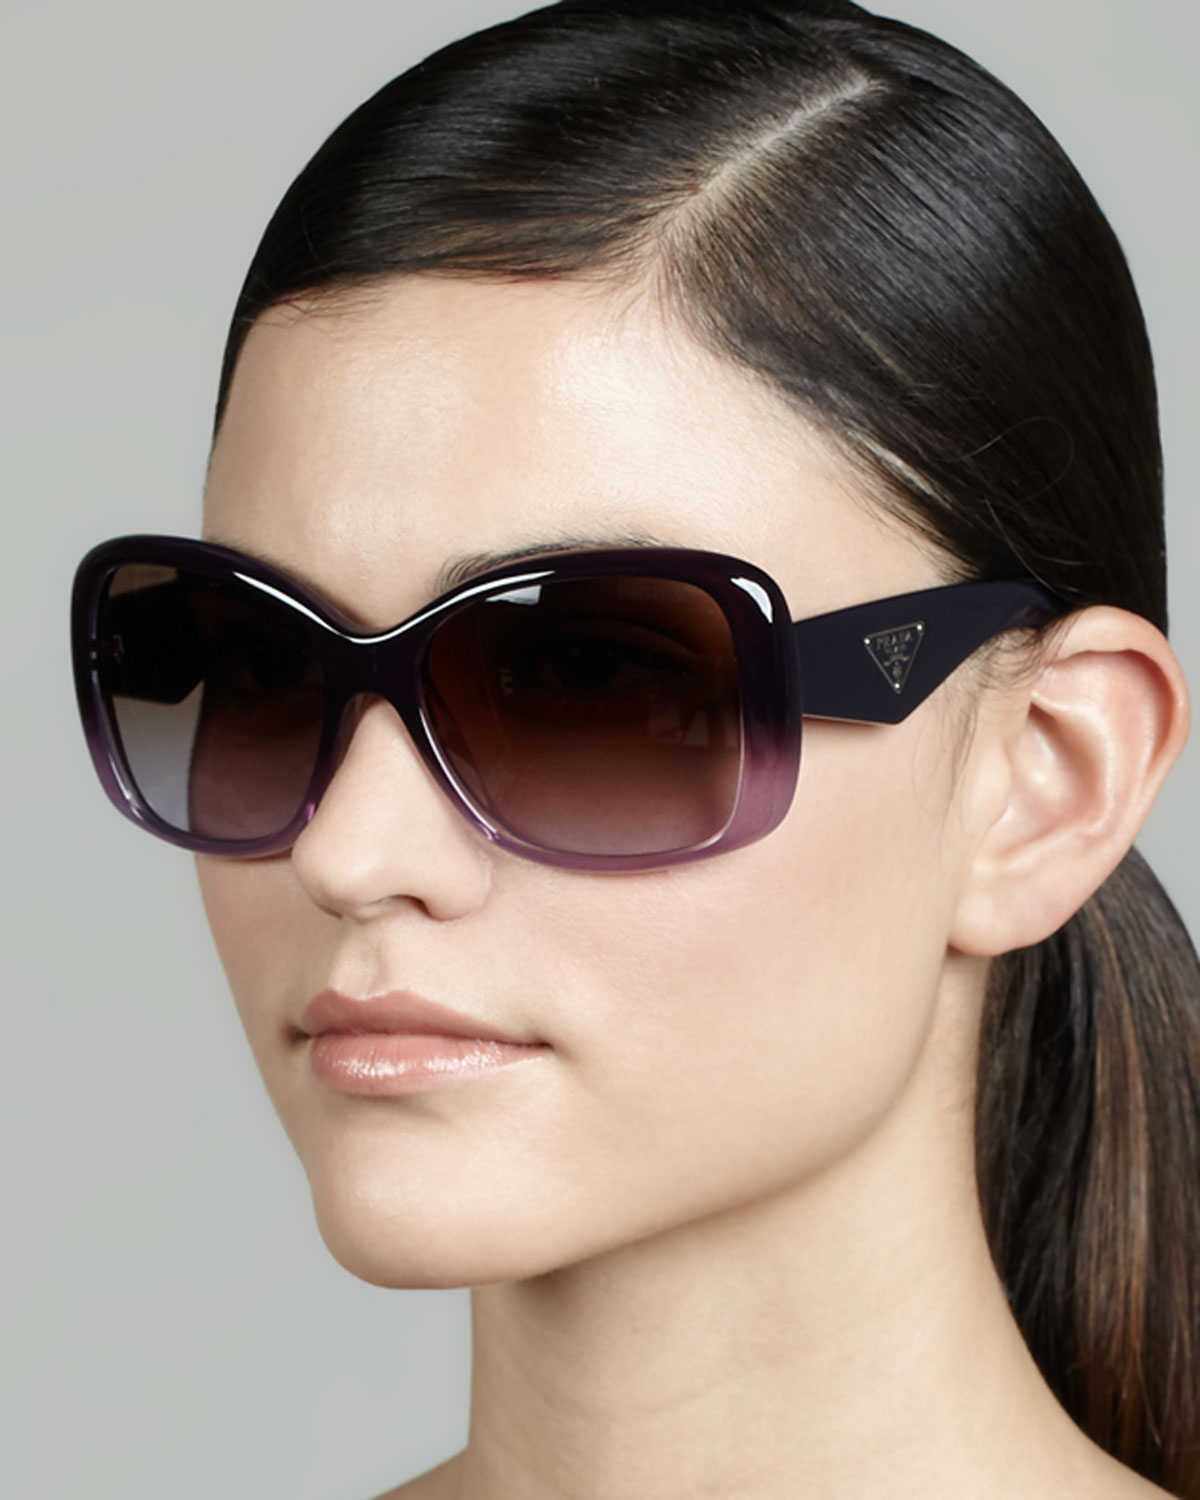 84db66fcbfcf Lyst - Prada Heritage Logo Square Sunglasses in Purple